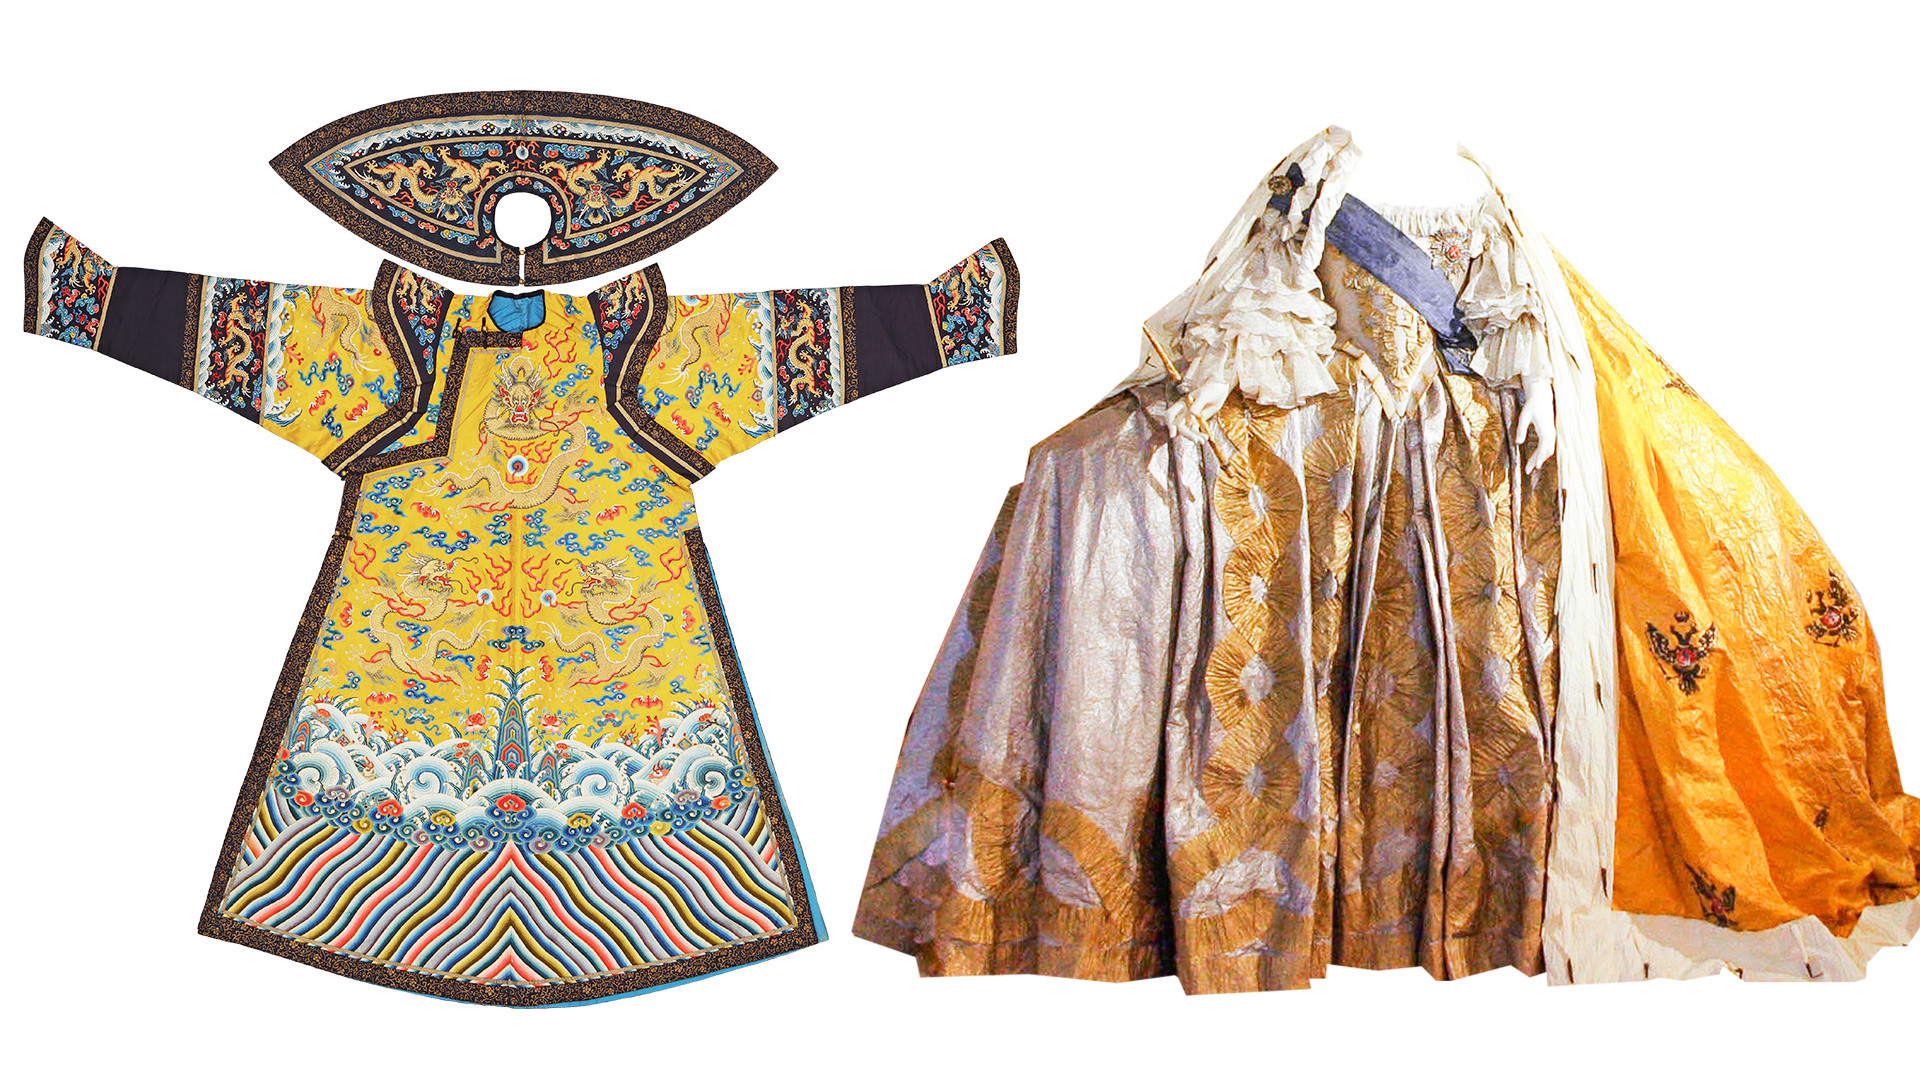 Left: Empress of China's grand robe of the Quing era.